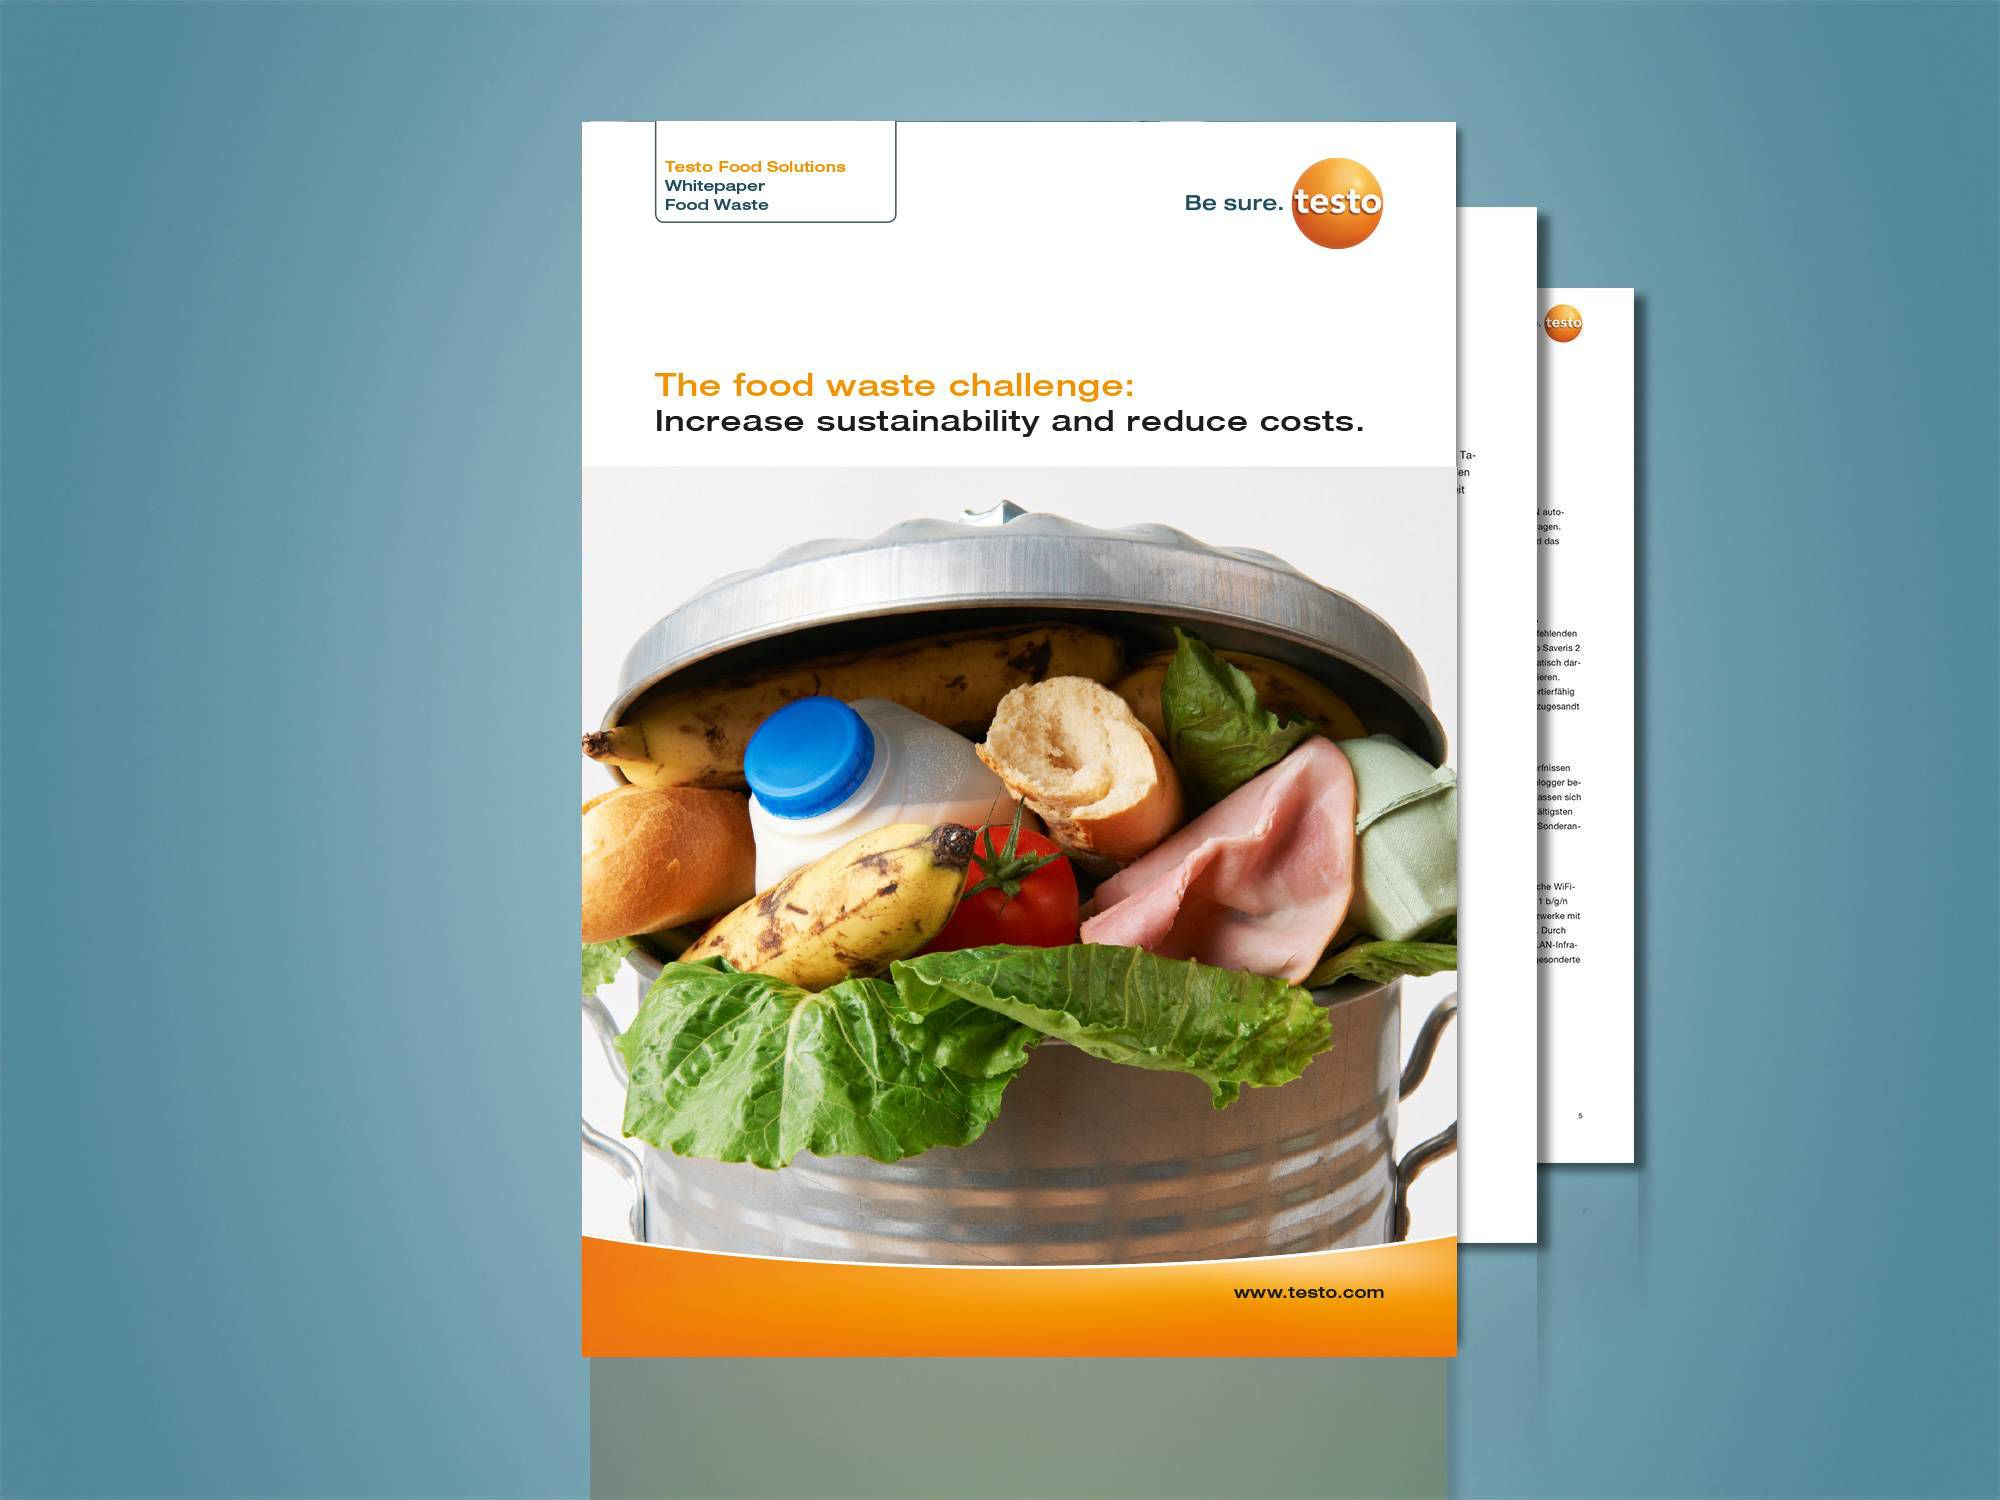 teaser-solutions-whitepaper-food-waste-2018-2000x1500.jpg